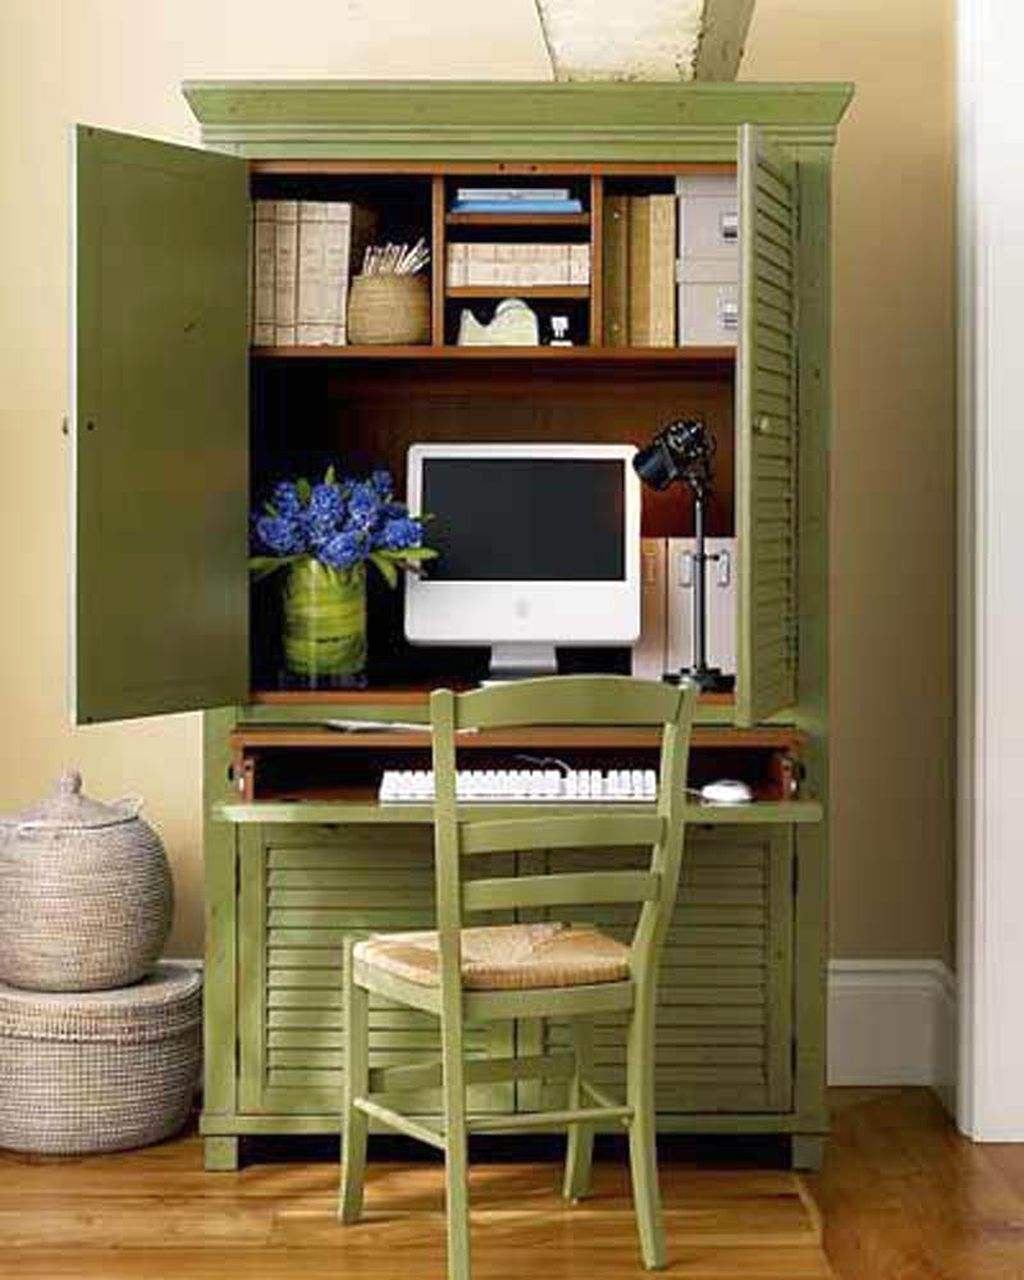 Home Office Design Ideas For Small Spaces: Green Cupboard Home Office Design Ideas For Small Spaces